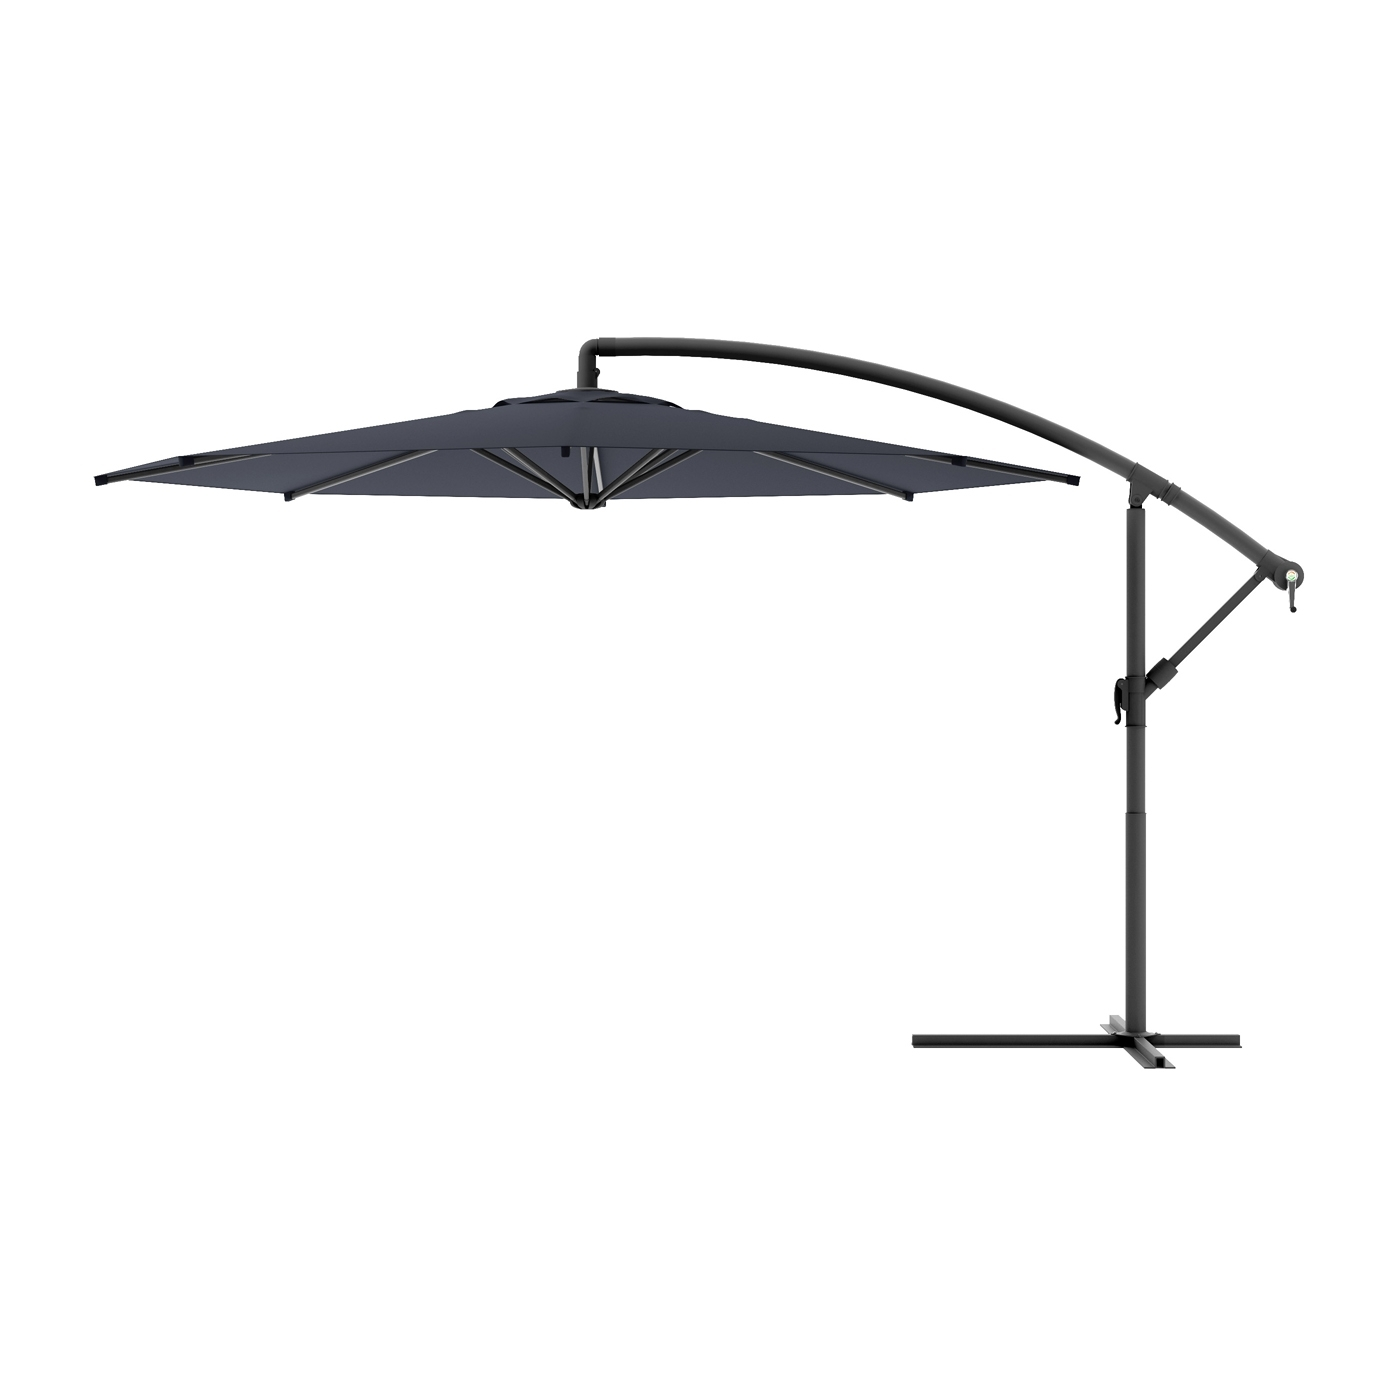 Widely Used Lowes Patio Umbrellas Regarding Corliving Ppu 4 Cantilever Patio Umbrella (View 20 of 20)